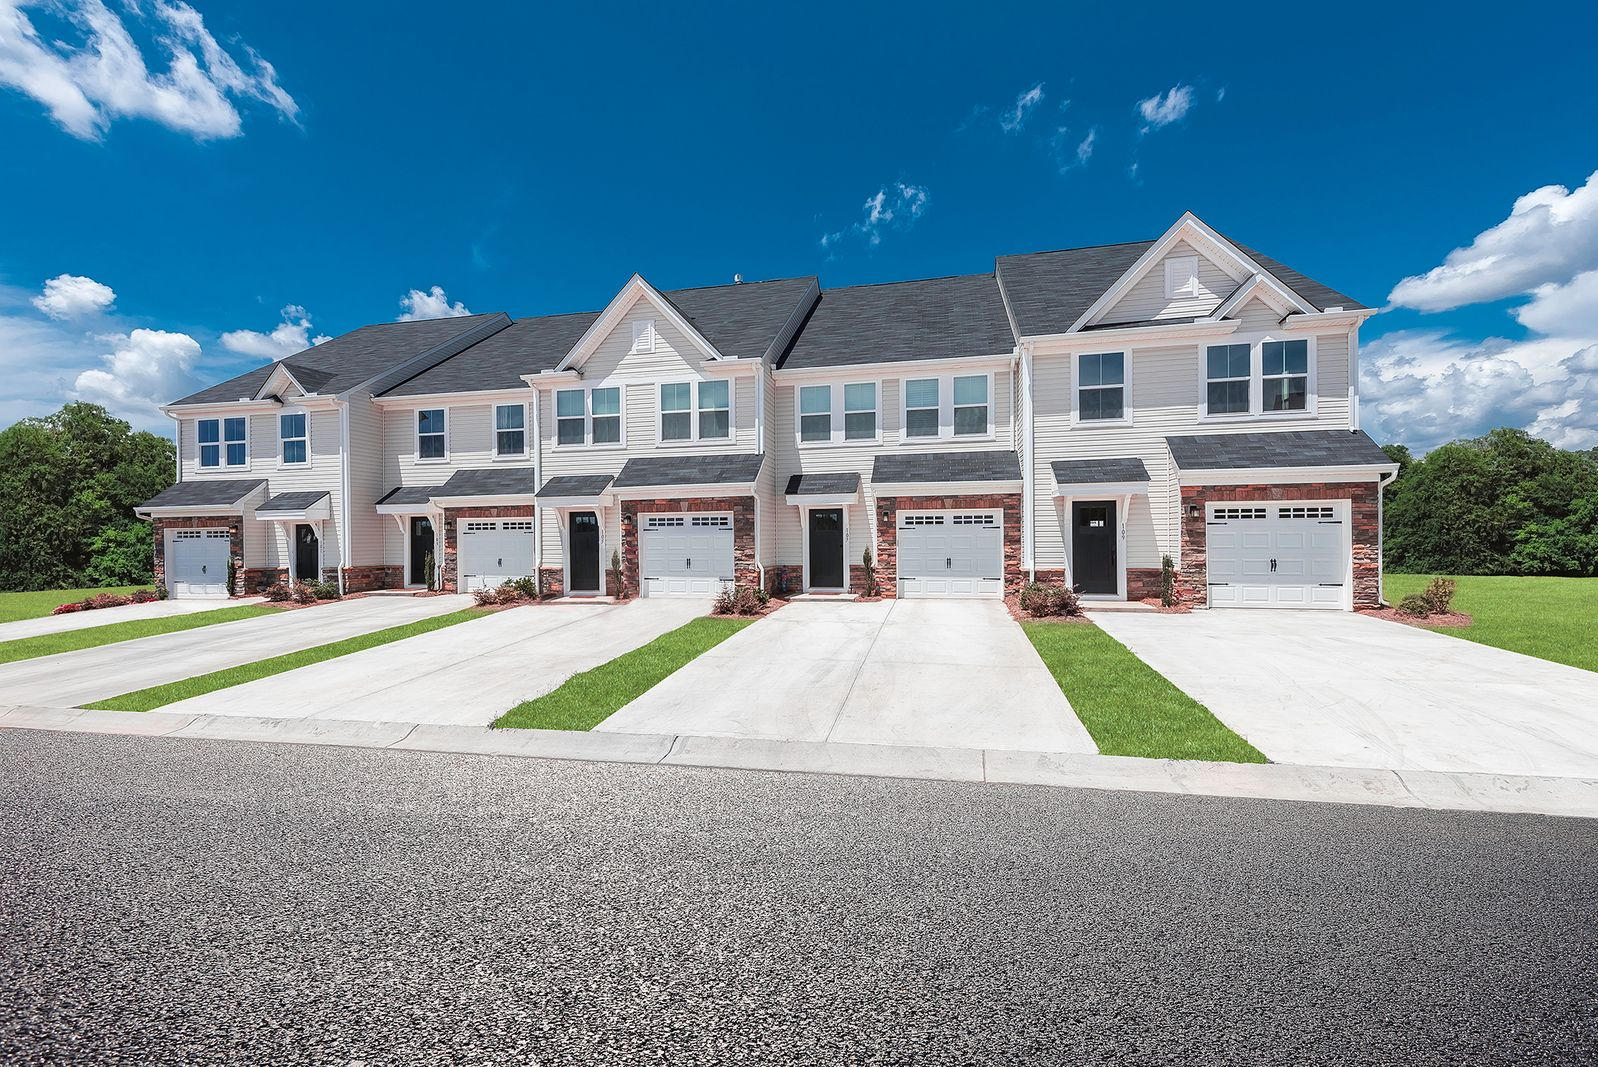 Welcome Home to Grove Point:New 3-bedroom, 1 car garage townhomes for as little as $1578*/month just off laburnum & 360, minutes to I-64, I-295 & White Oak Village.Click here to schedule your visit!